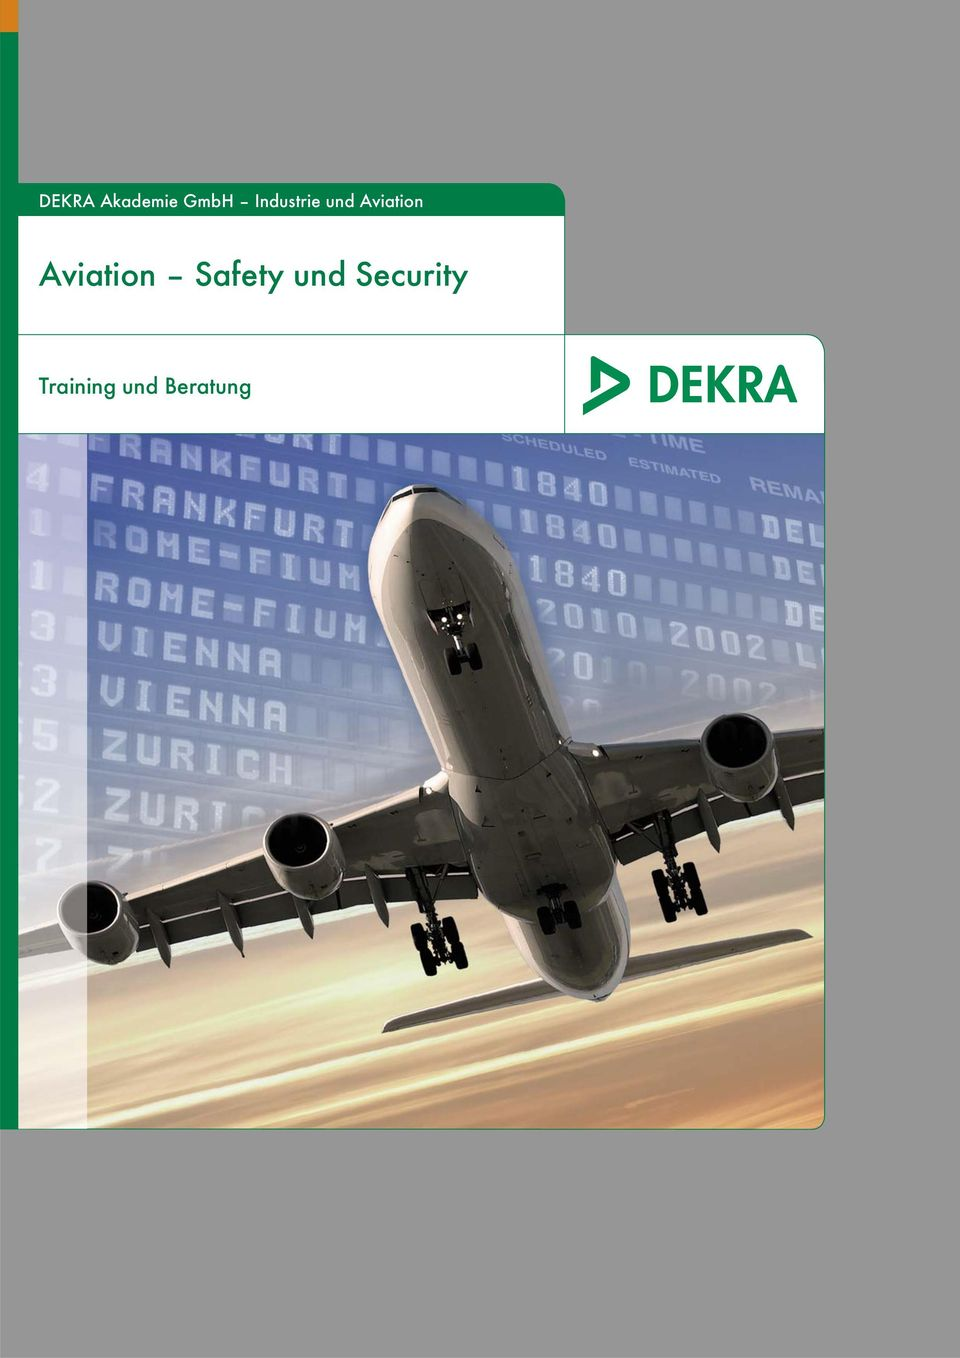 Aviation Safety und